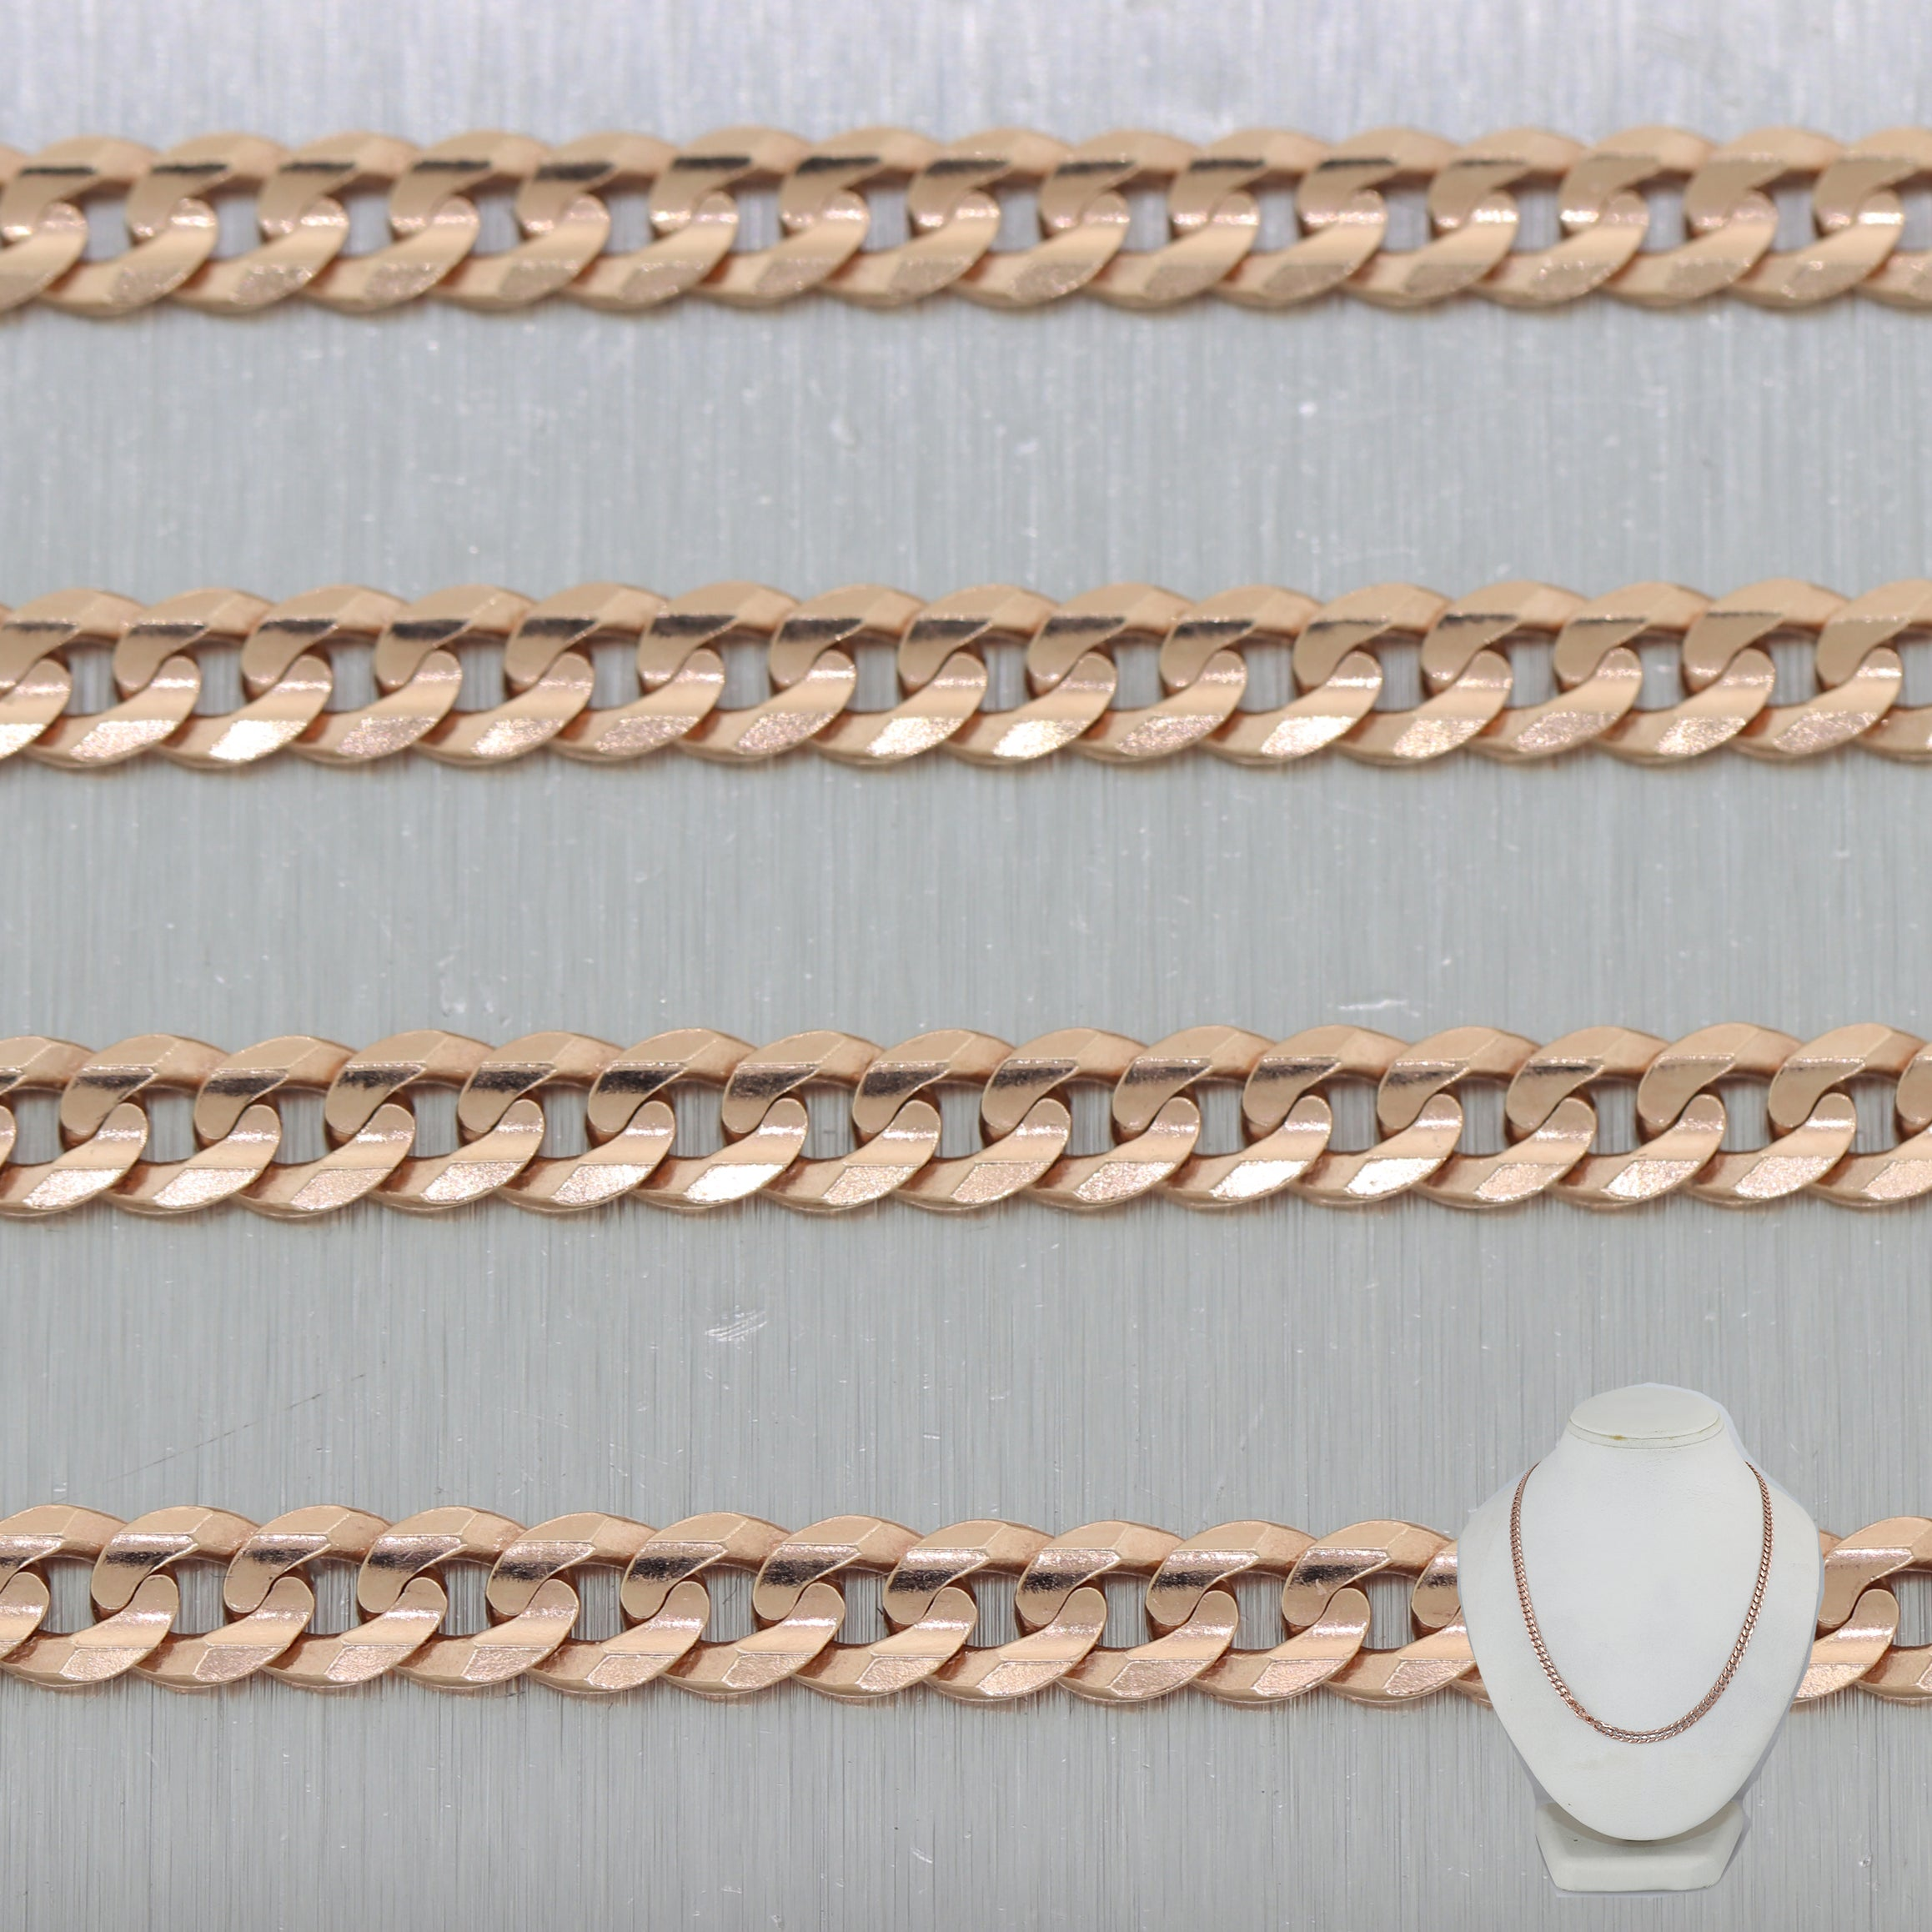 "Modern 15.07G 14k Rose Gold Cuban Curb Link 18"" Chain Necklace"